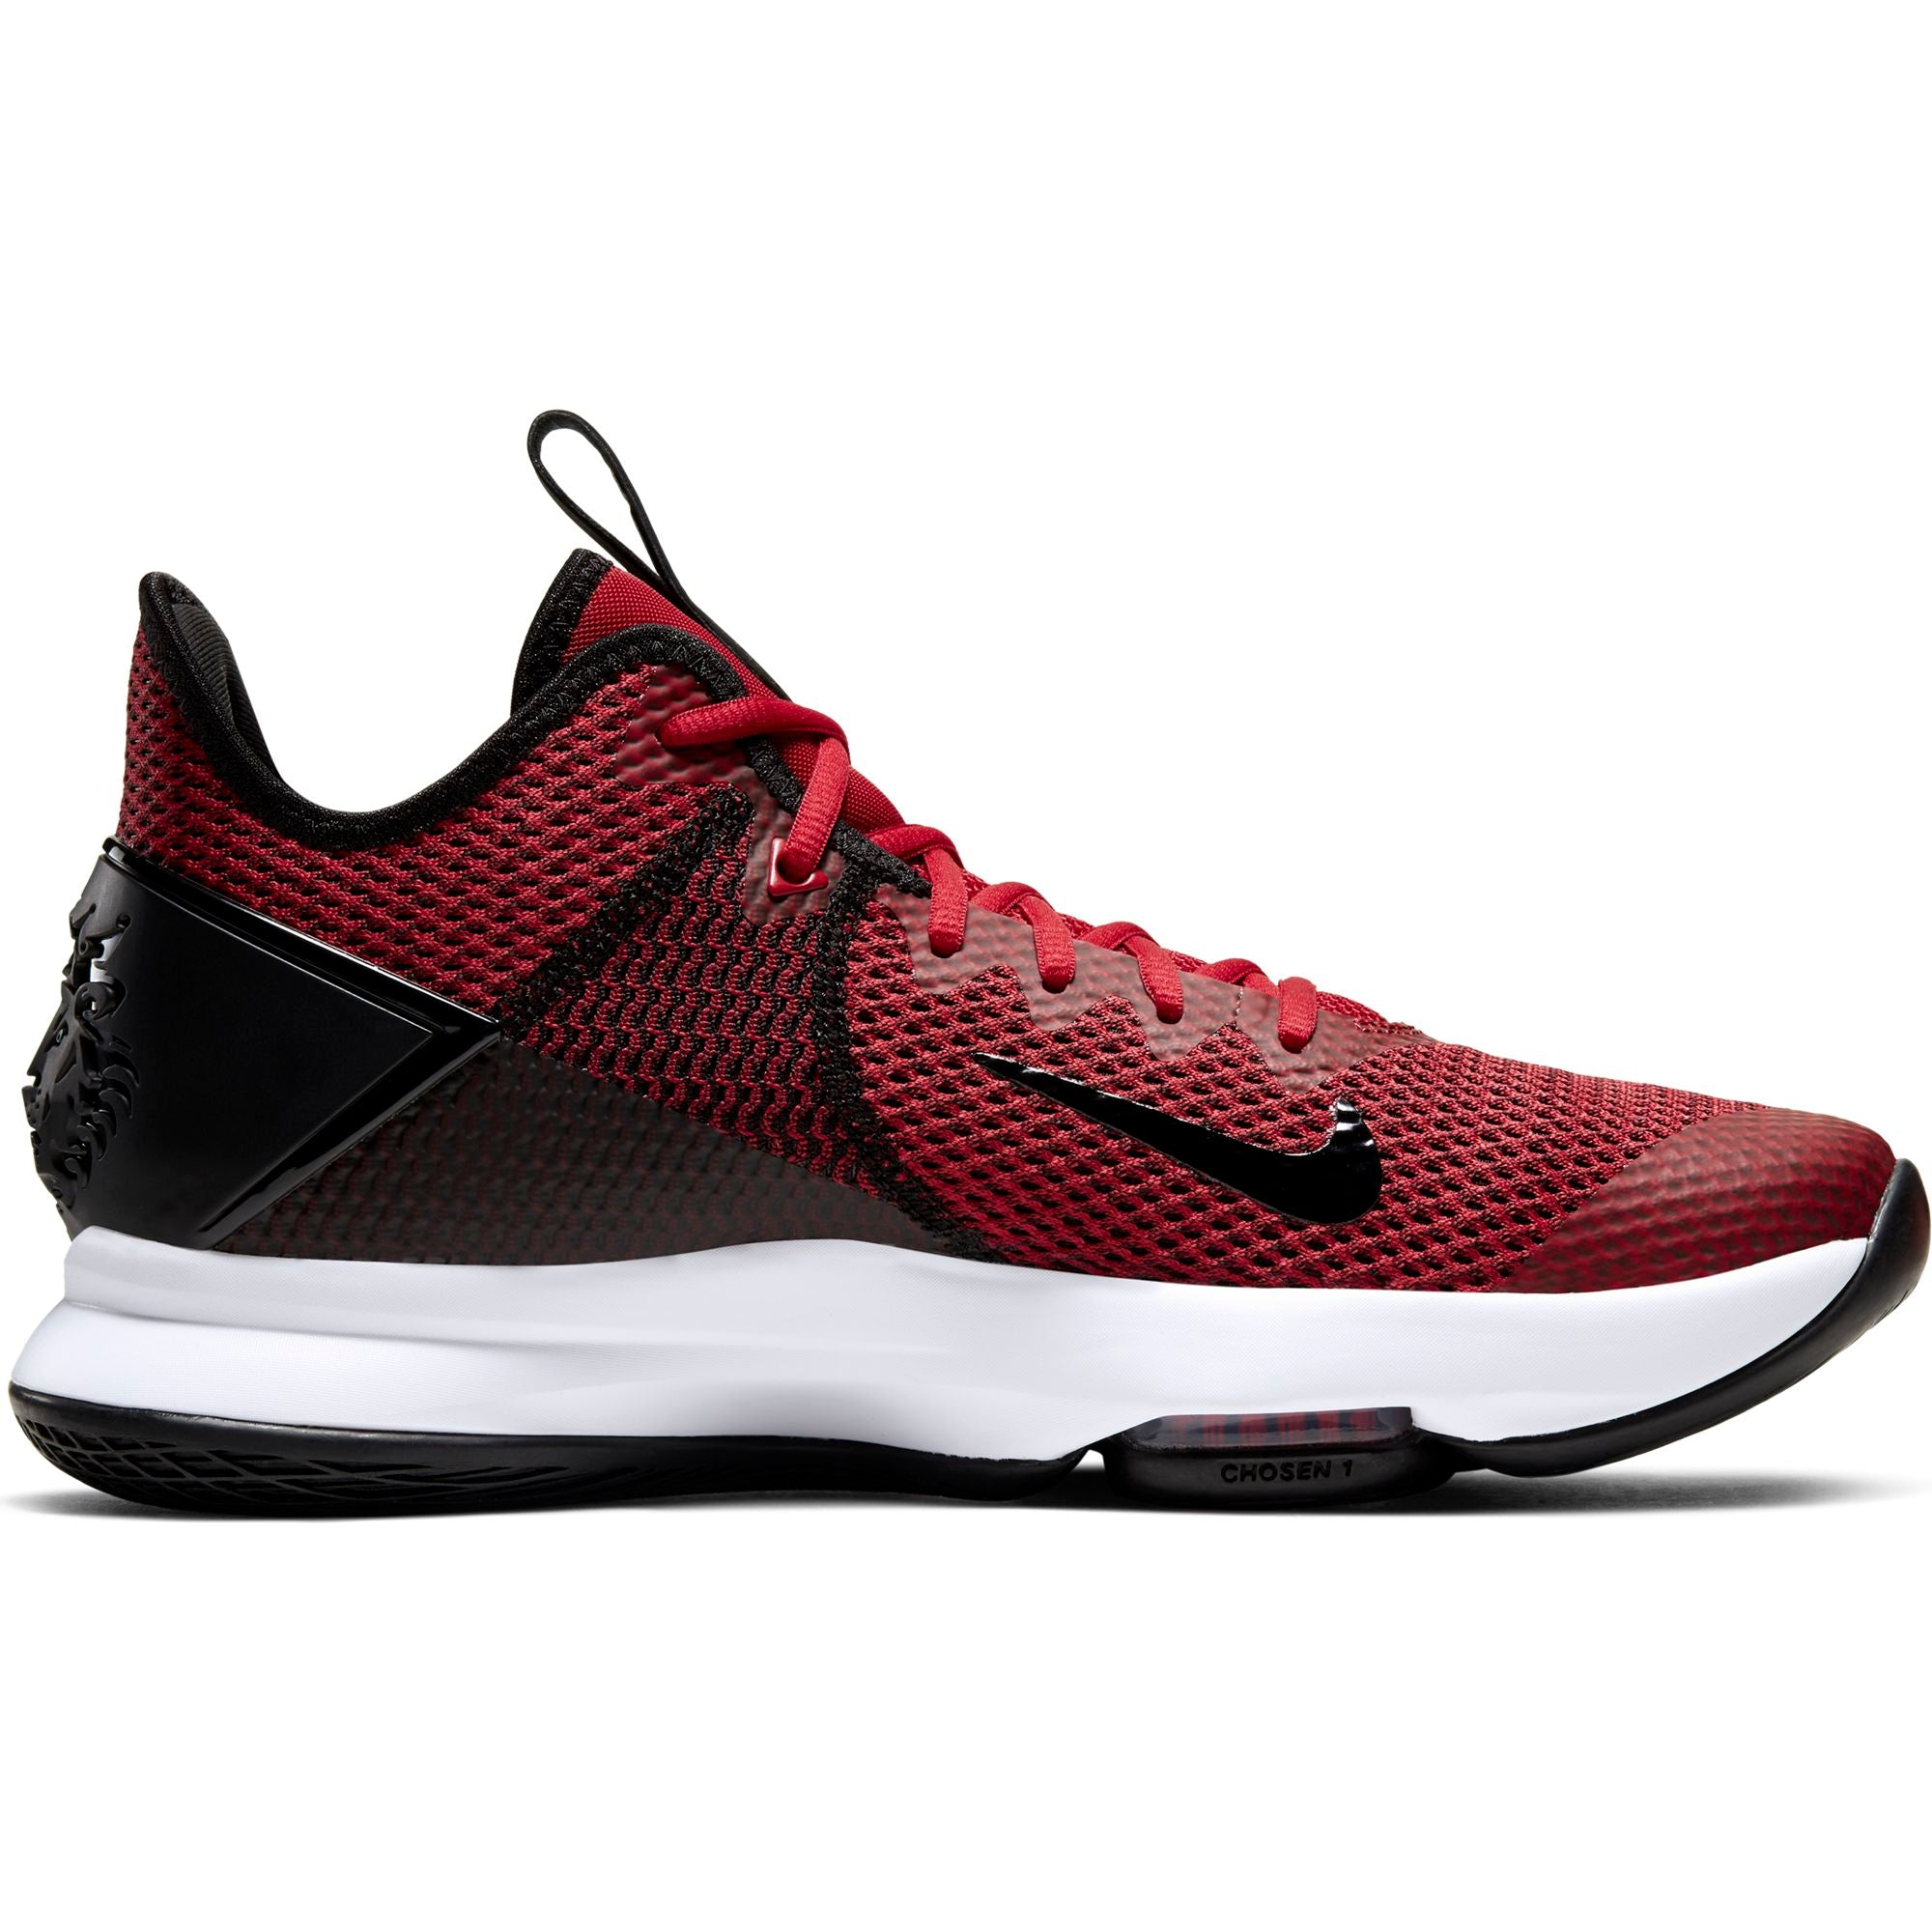 Nike Lebron Witness 4 Basketball Boot/shoe - Black/Gym Red/White